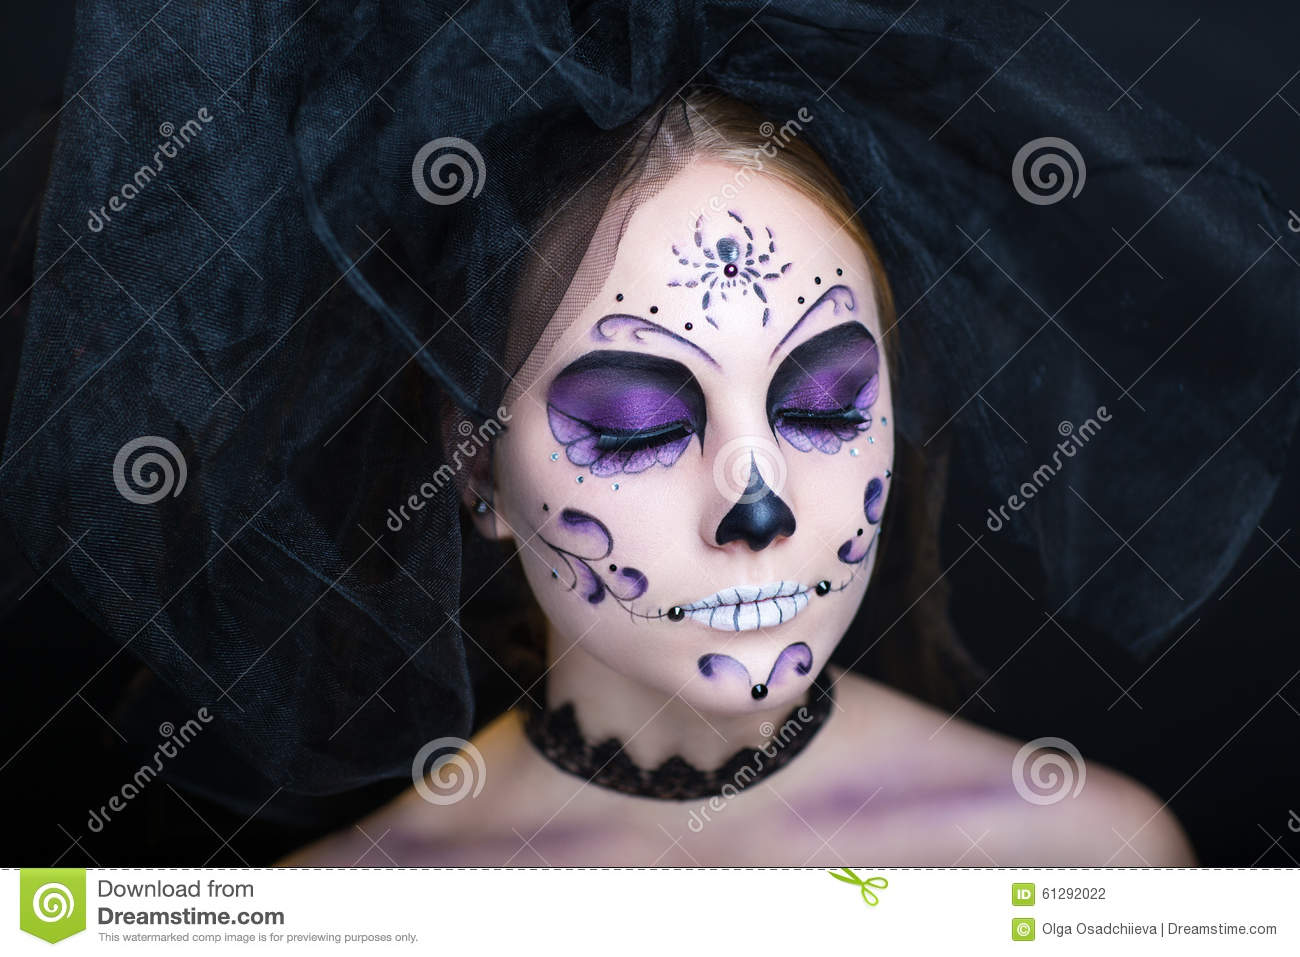 How To Make Mask On Paint Net